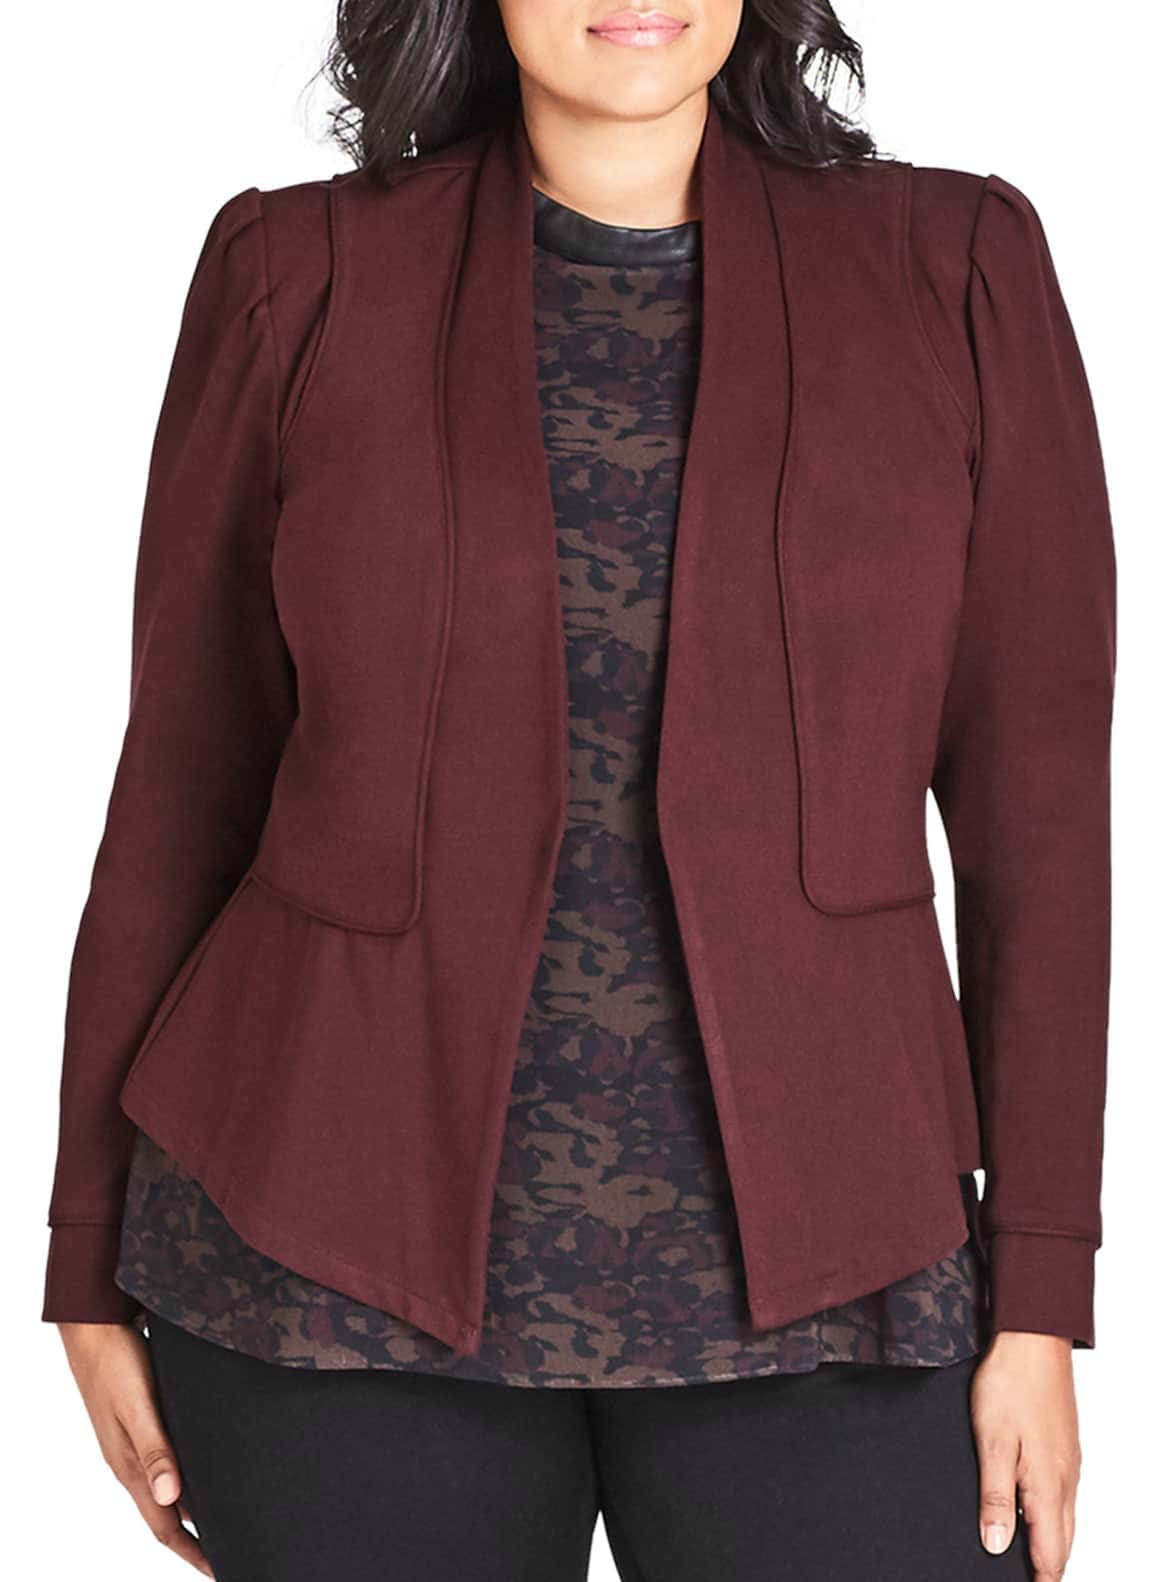 soft knit jacket City Chic from Nordstrom on A Well Styled Life